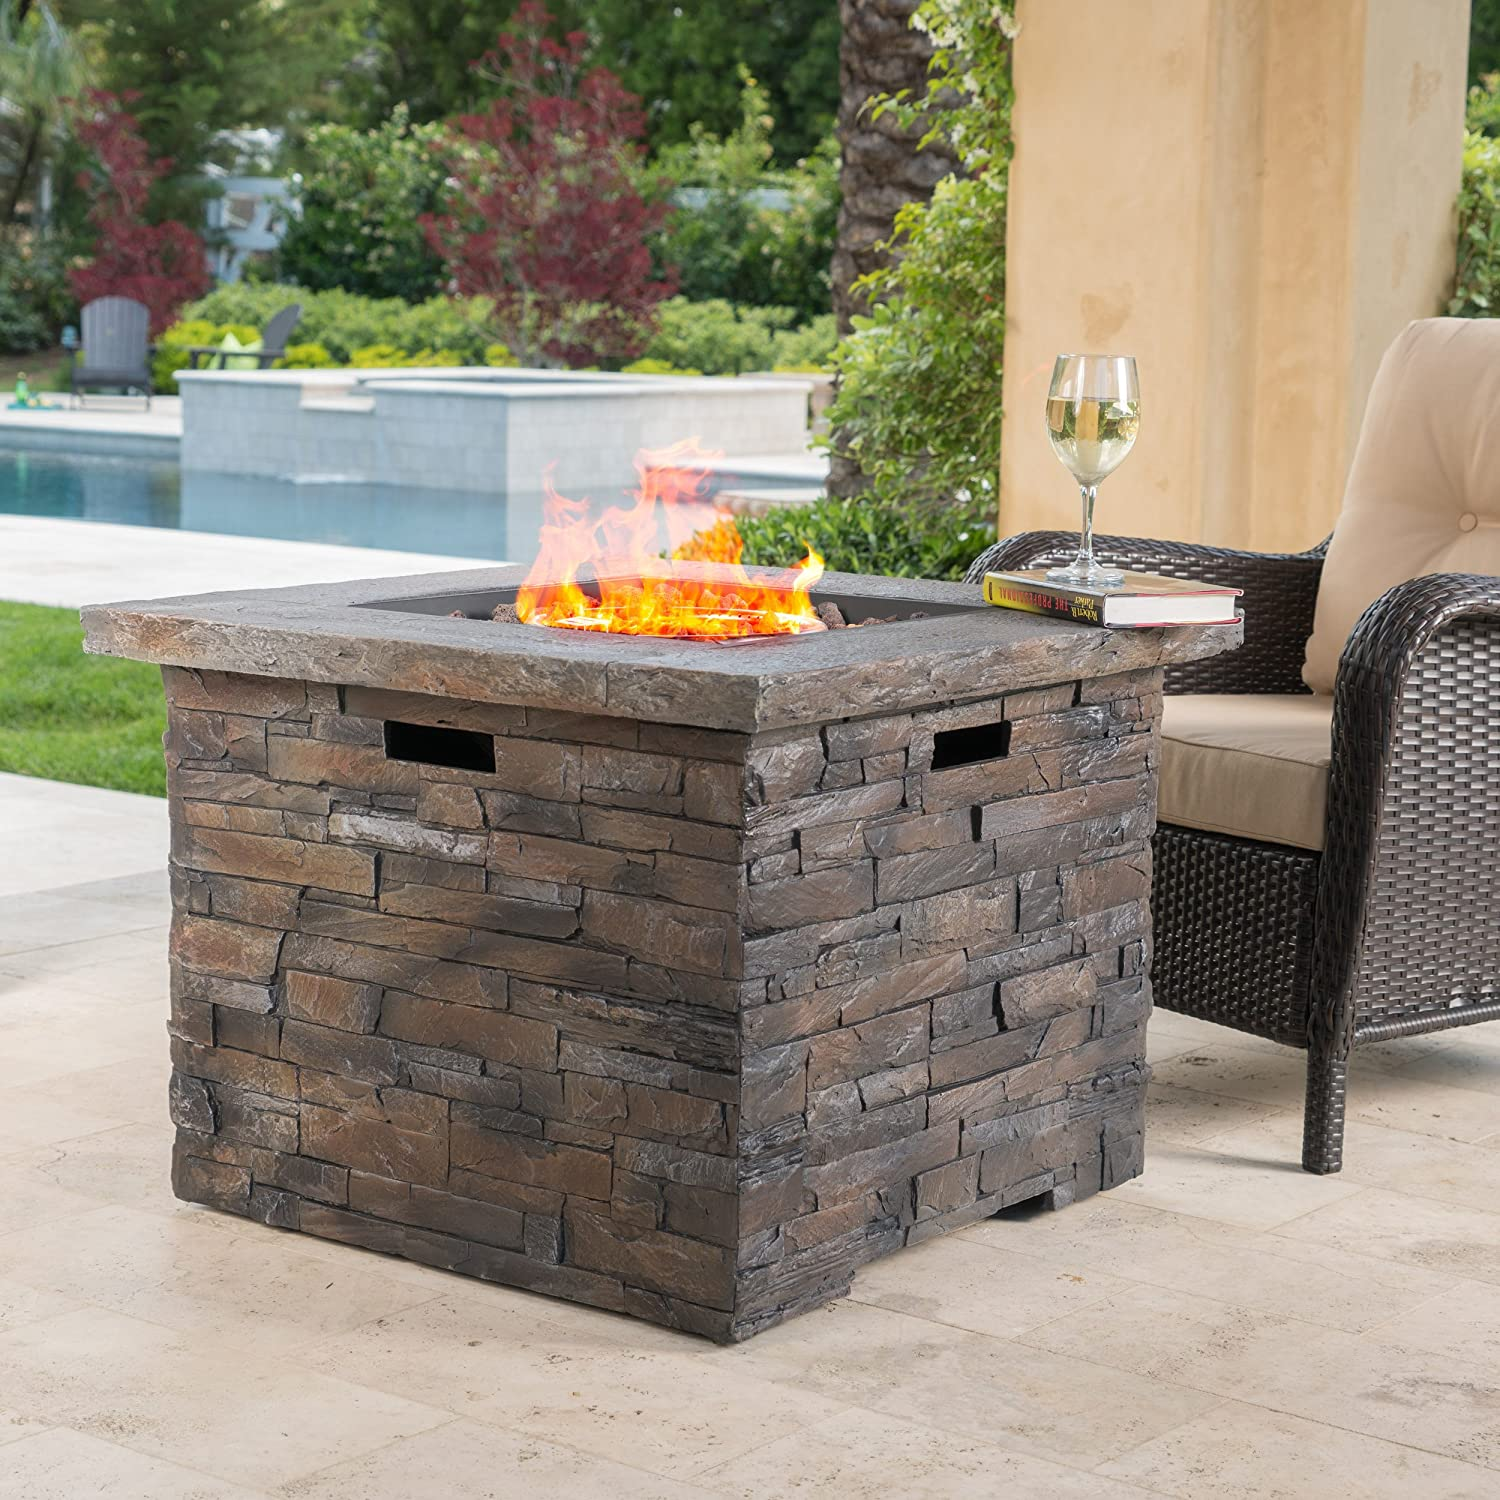 Stonecrest Outdoor Propane Square Fire Pit in Grey Stone